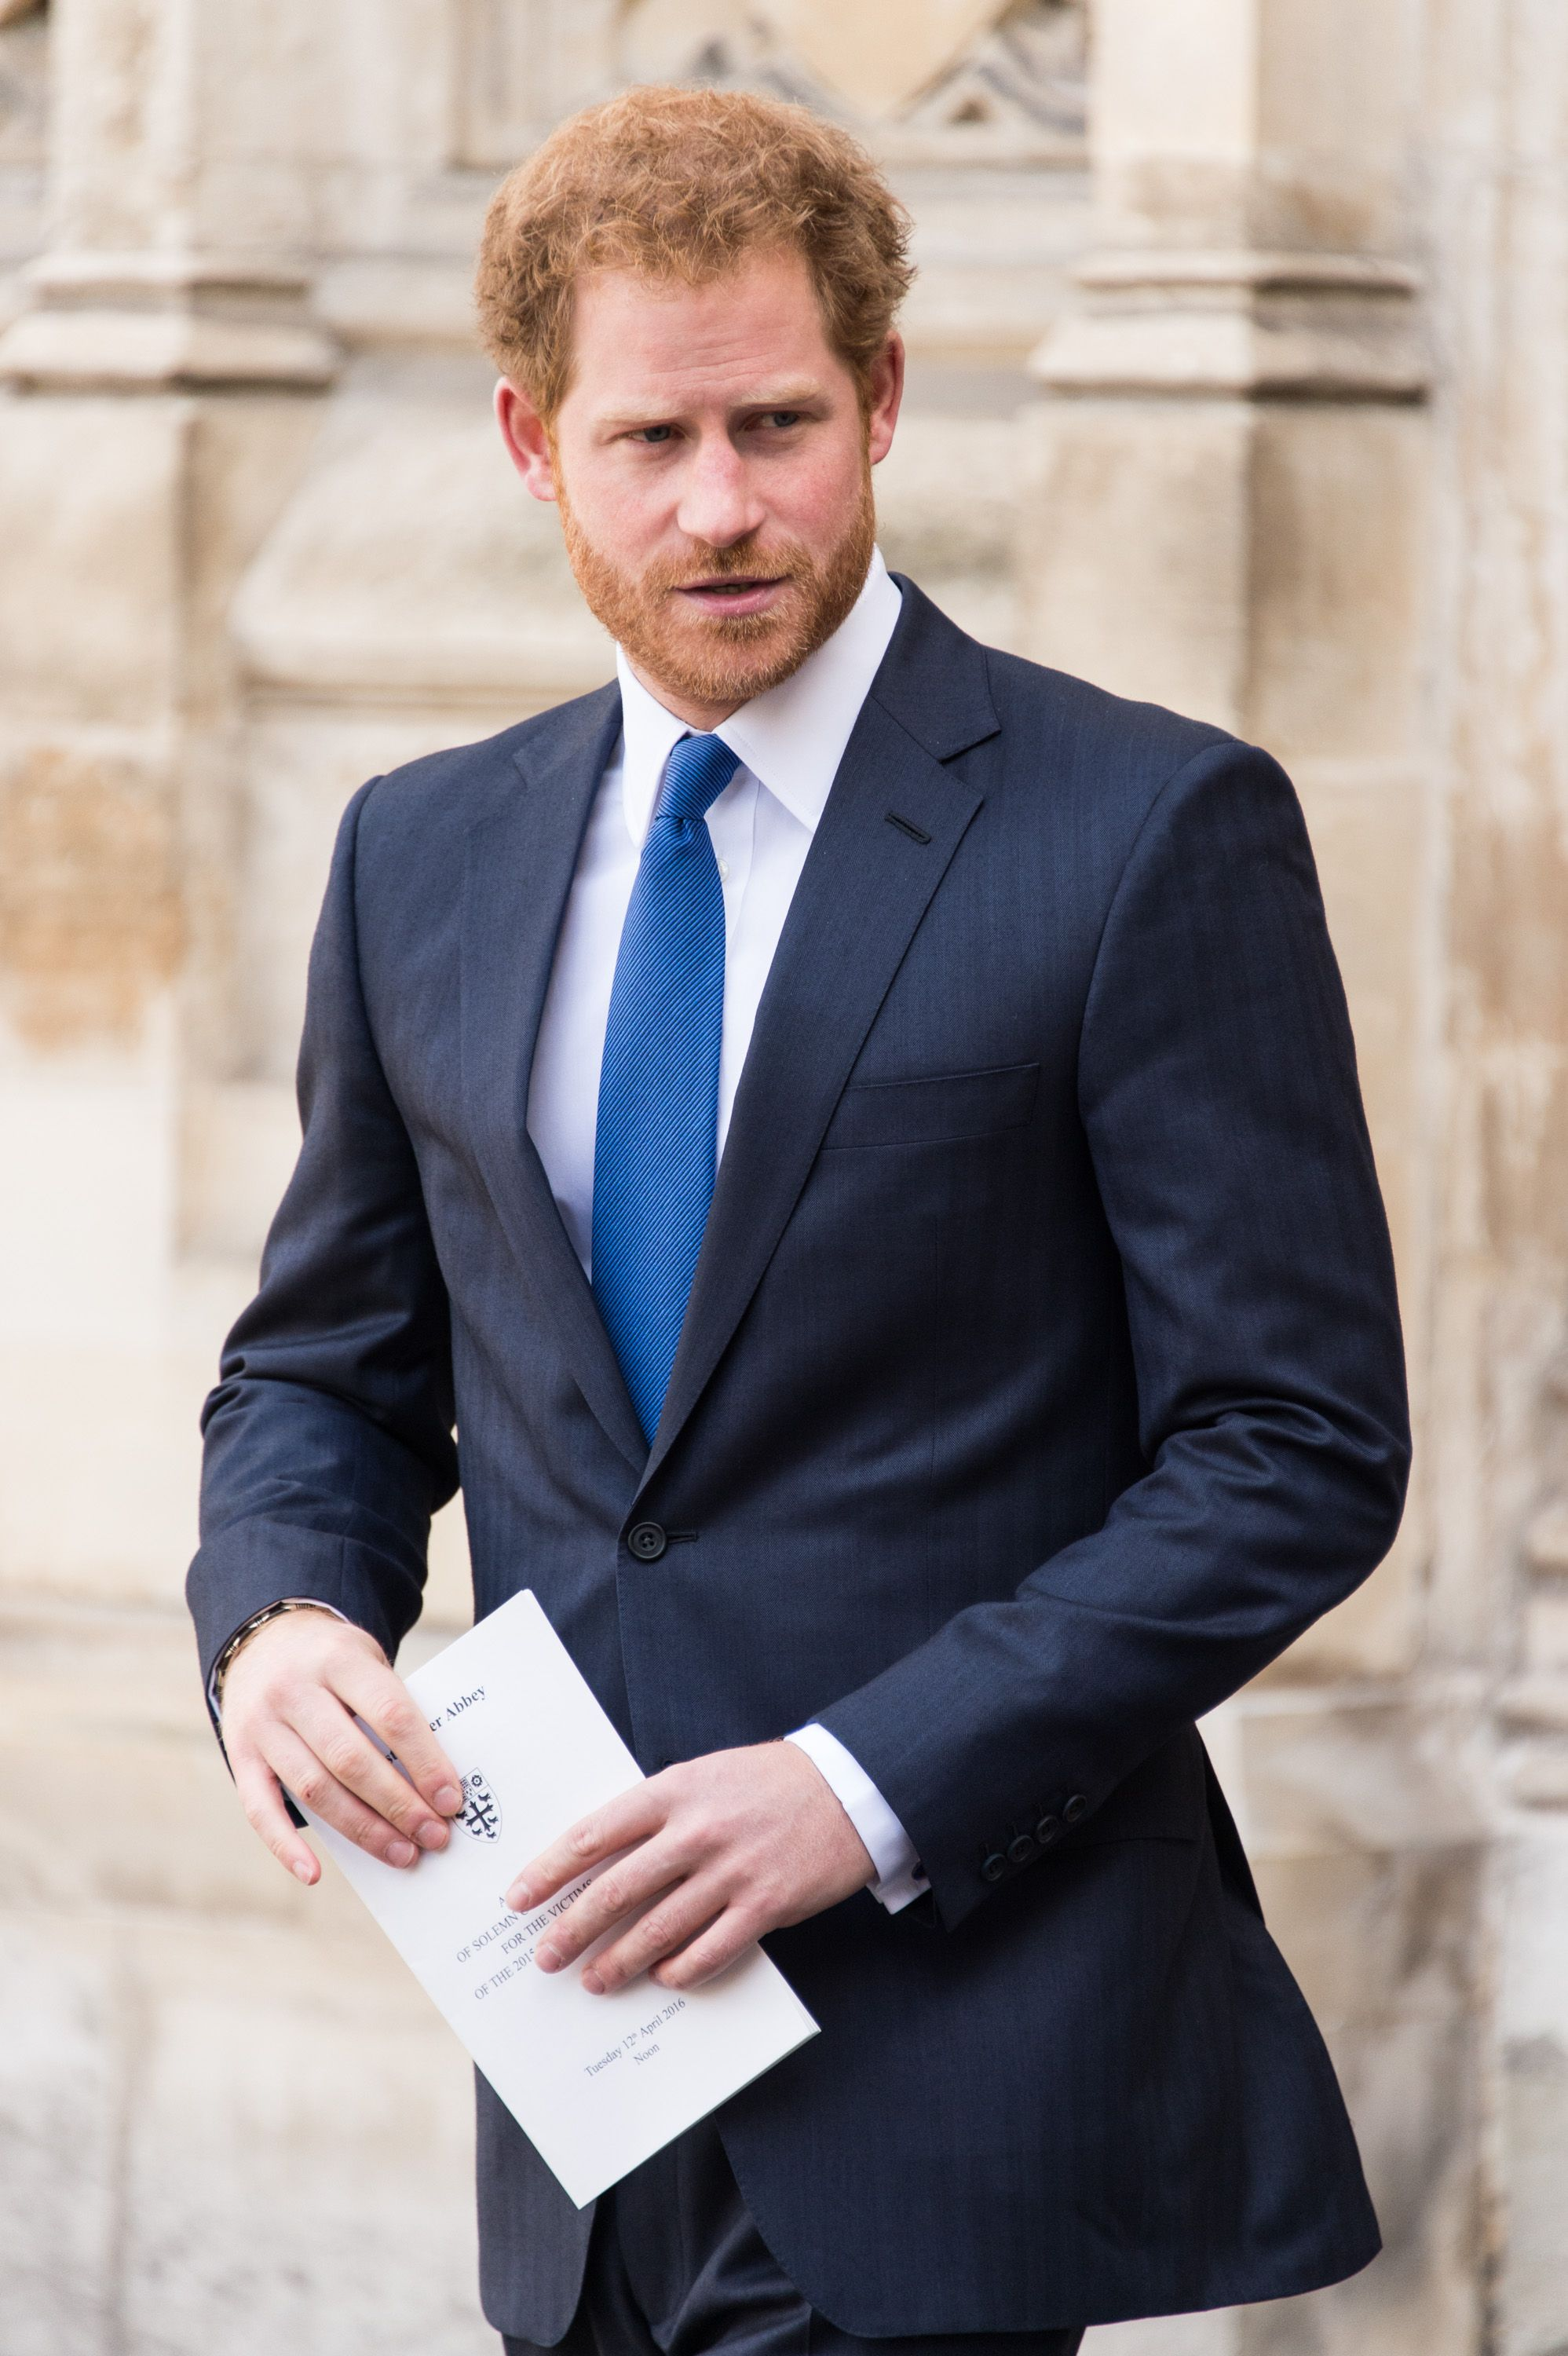 Prince Harry Released His 'Daily Mail' Lawsuit Letter Against the Advice of His Royal Aides